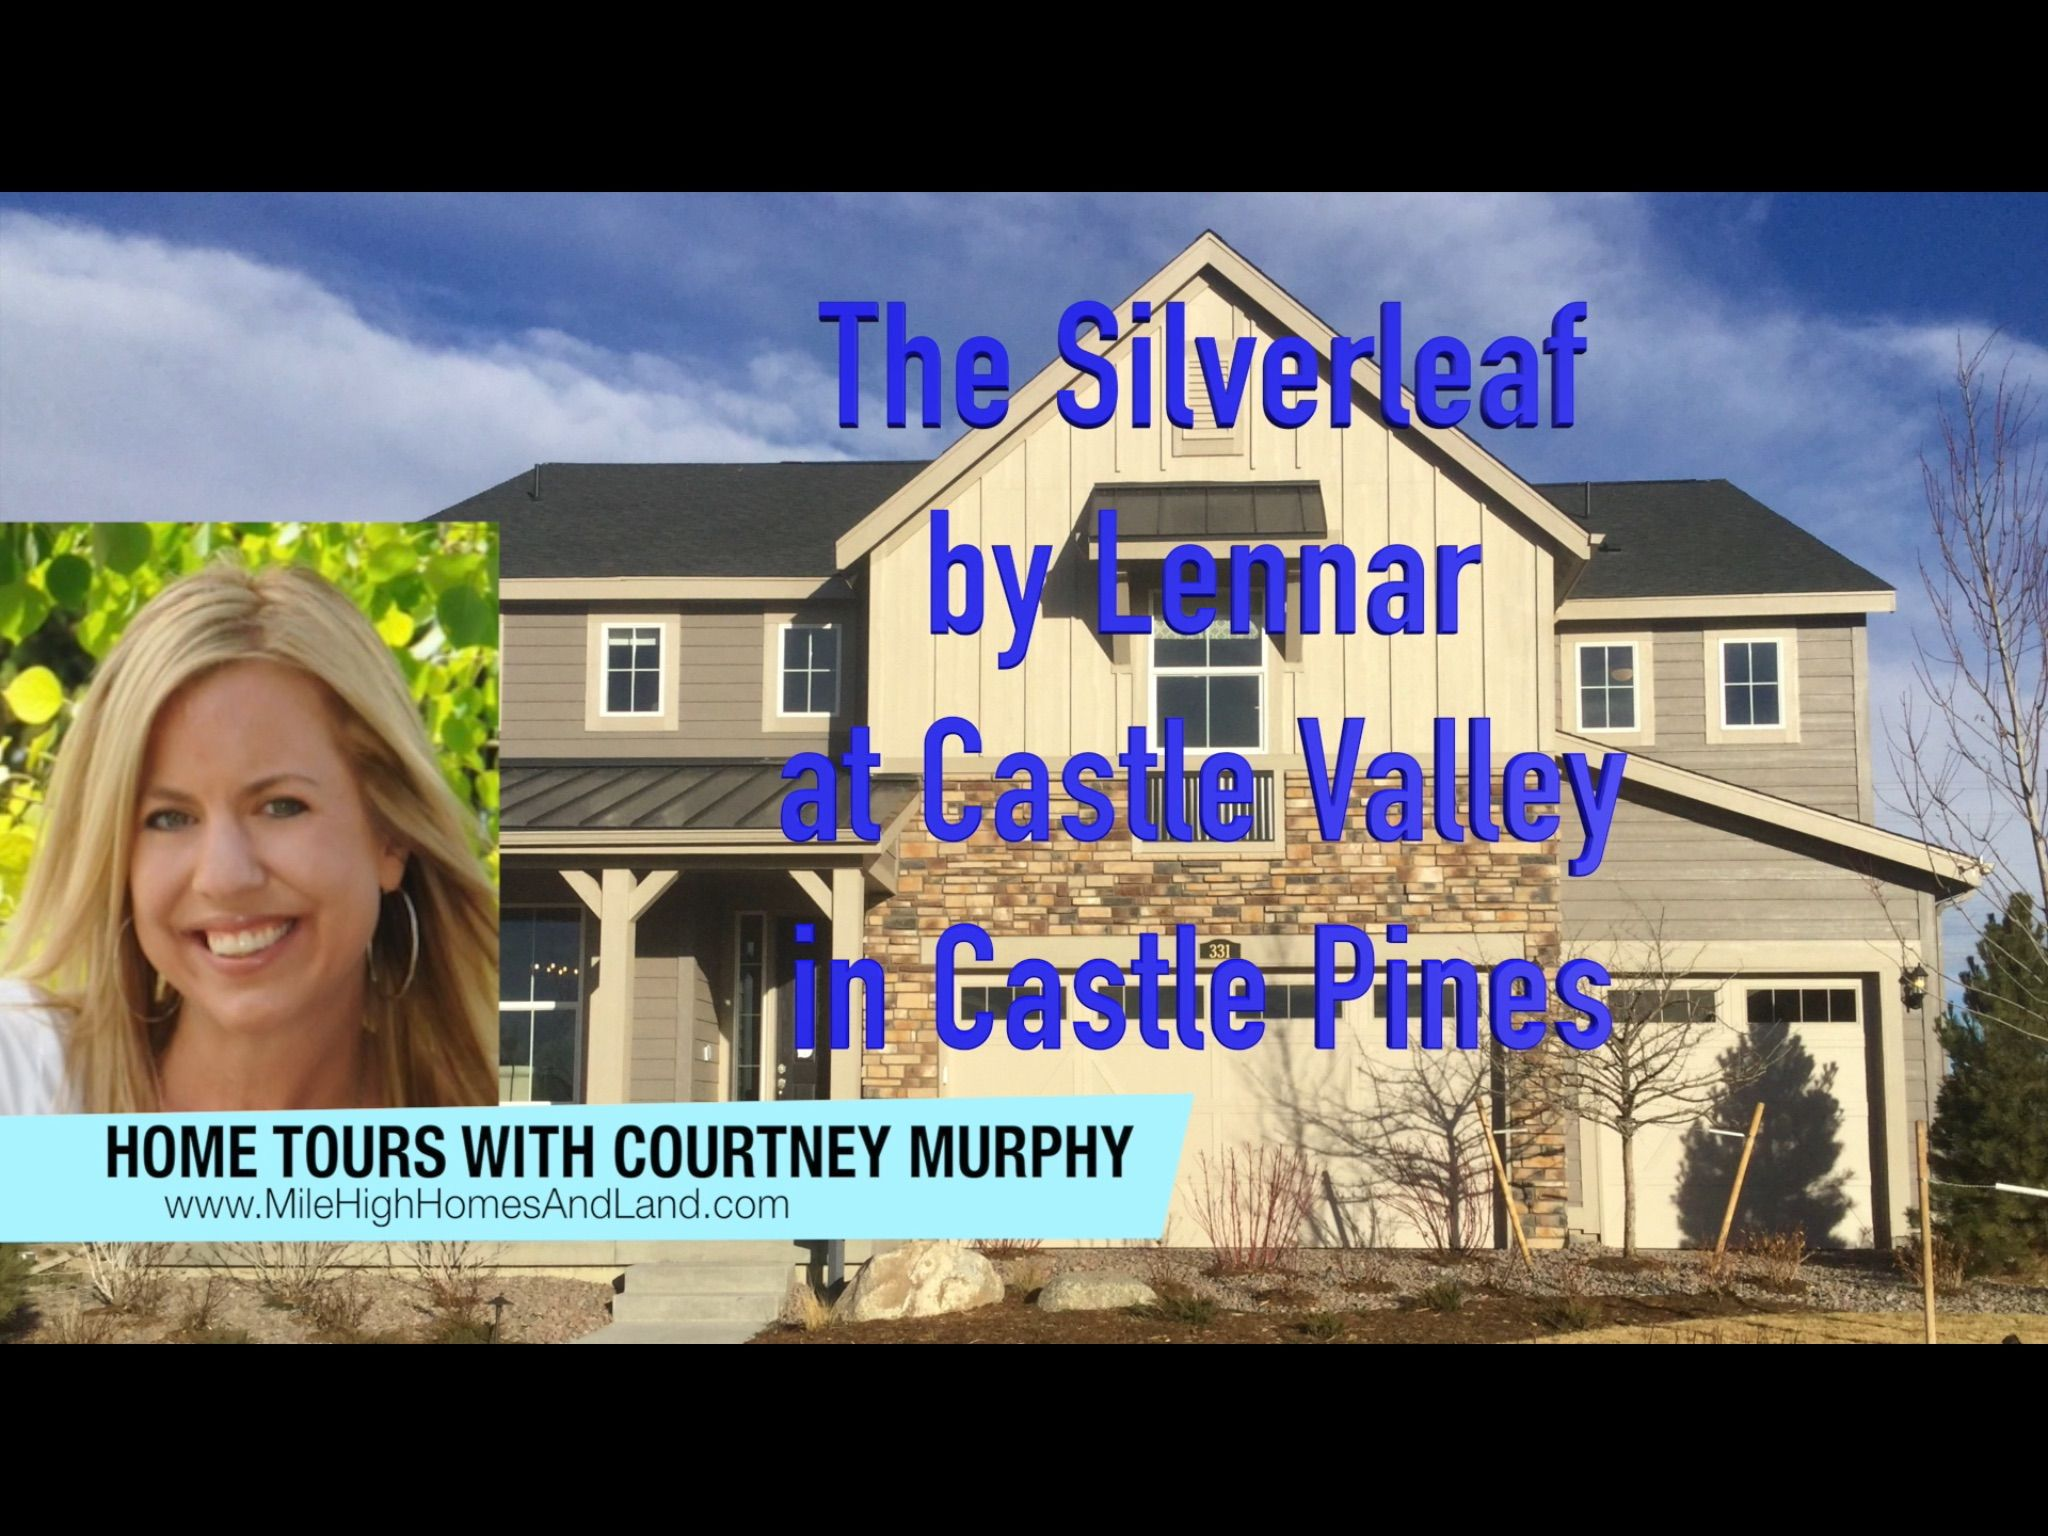 The Silverleaf model by Lennar at Castle Valley in Castle ...